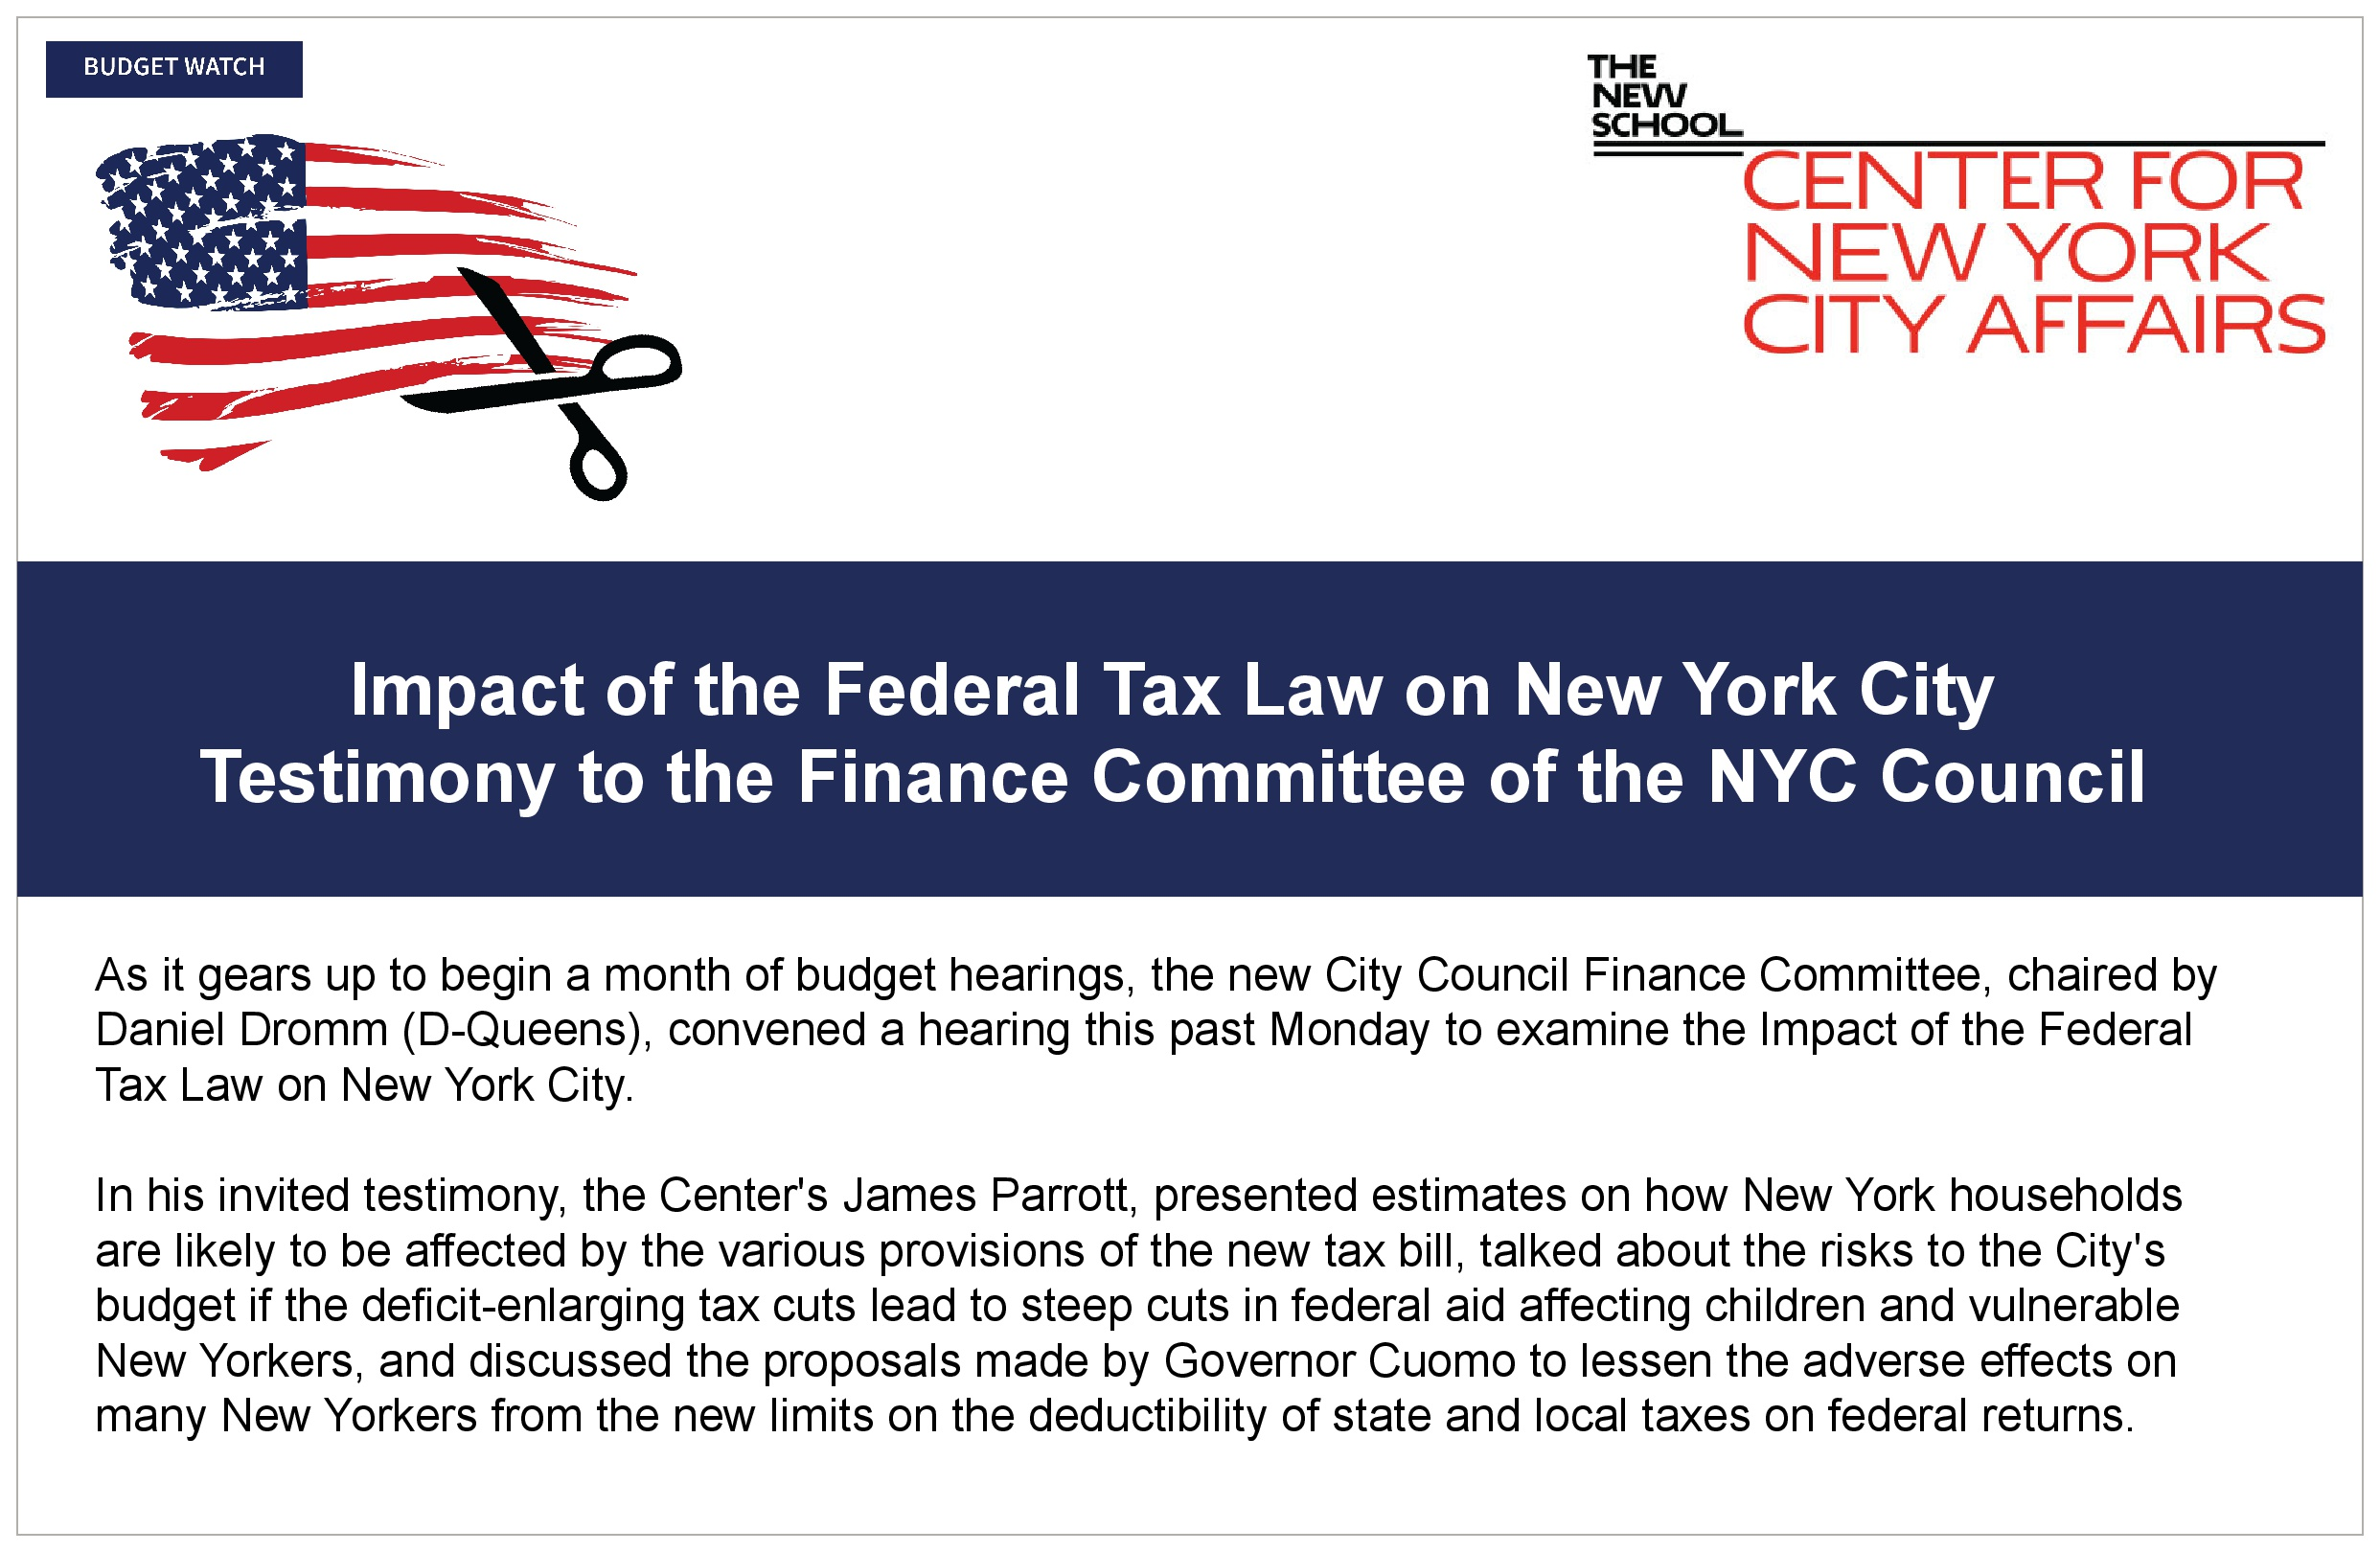 BW 4 Impact of the Federal Tax Law on NYC-001.jpg